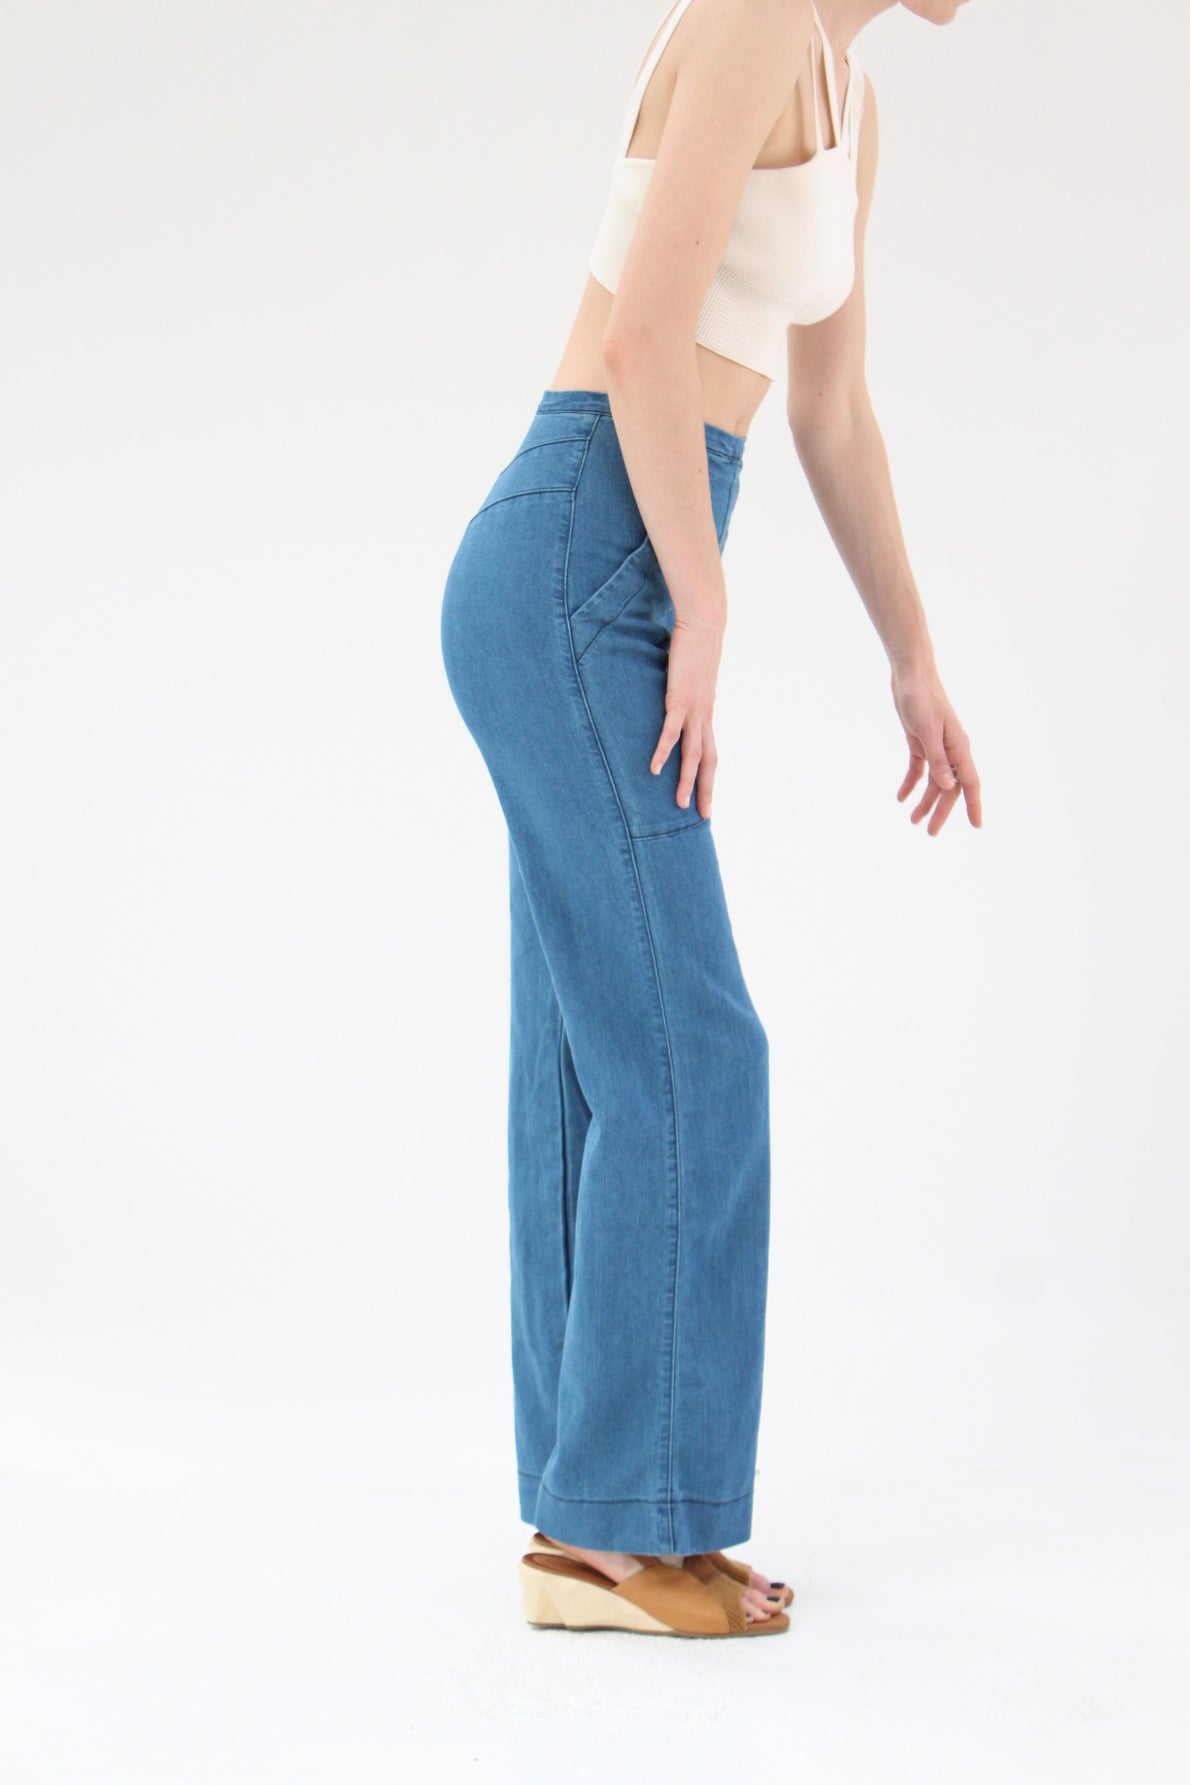 Prairie Underground Yr Arrow Pants Blue Wash Succulant / Beklina